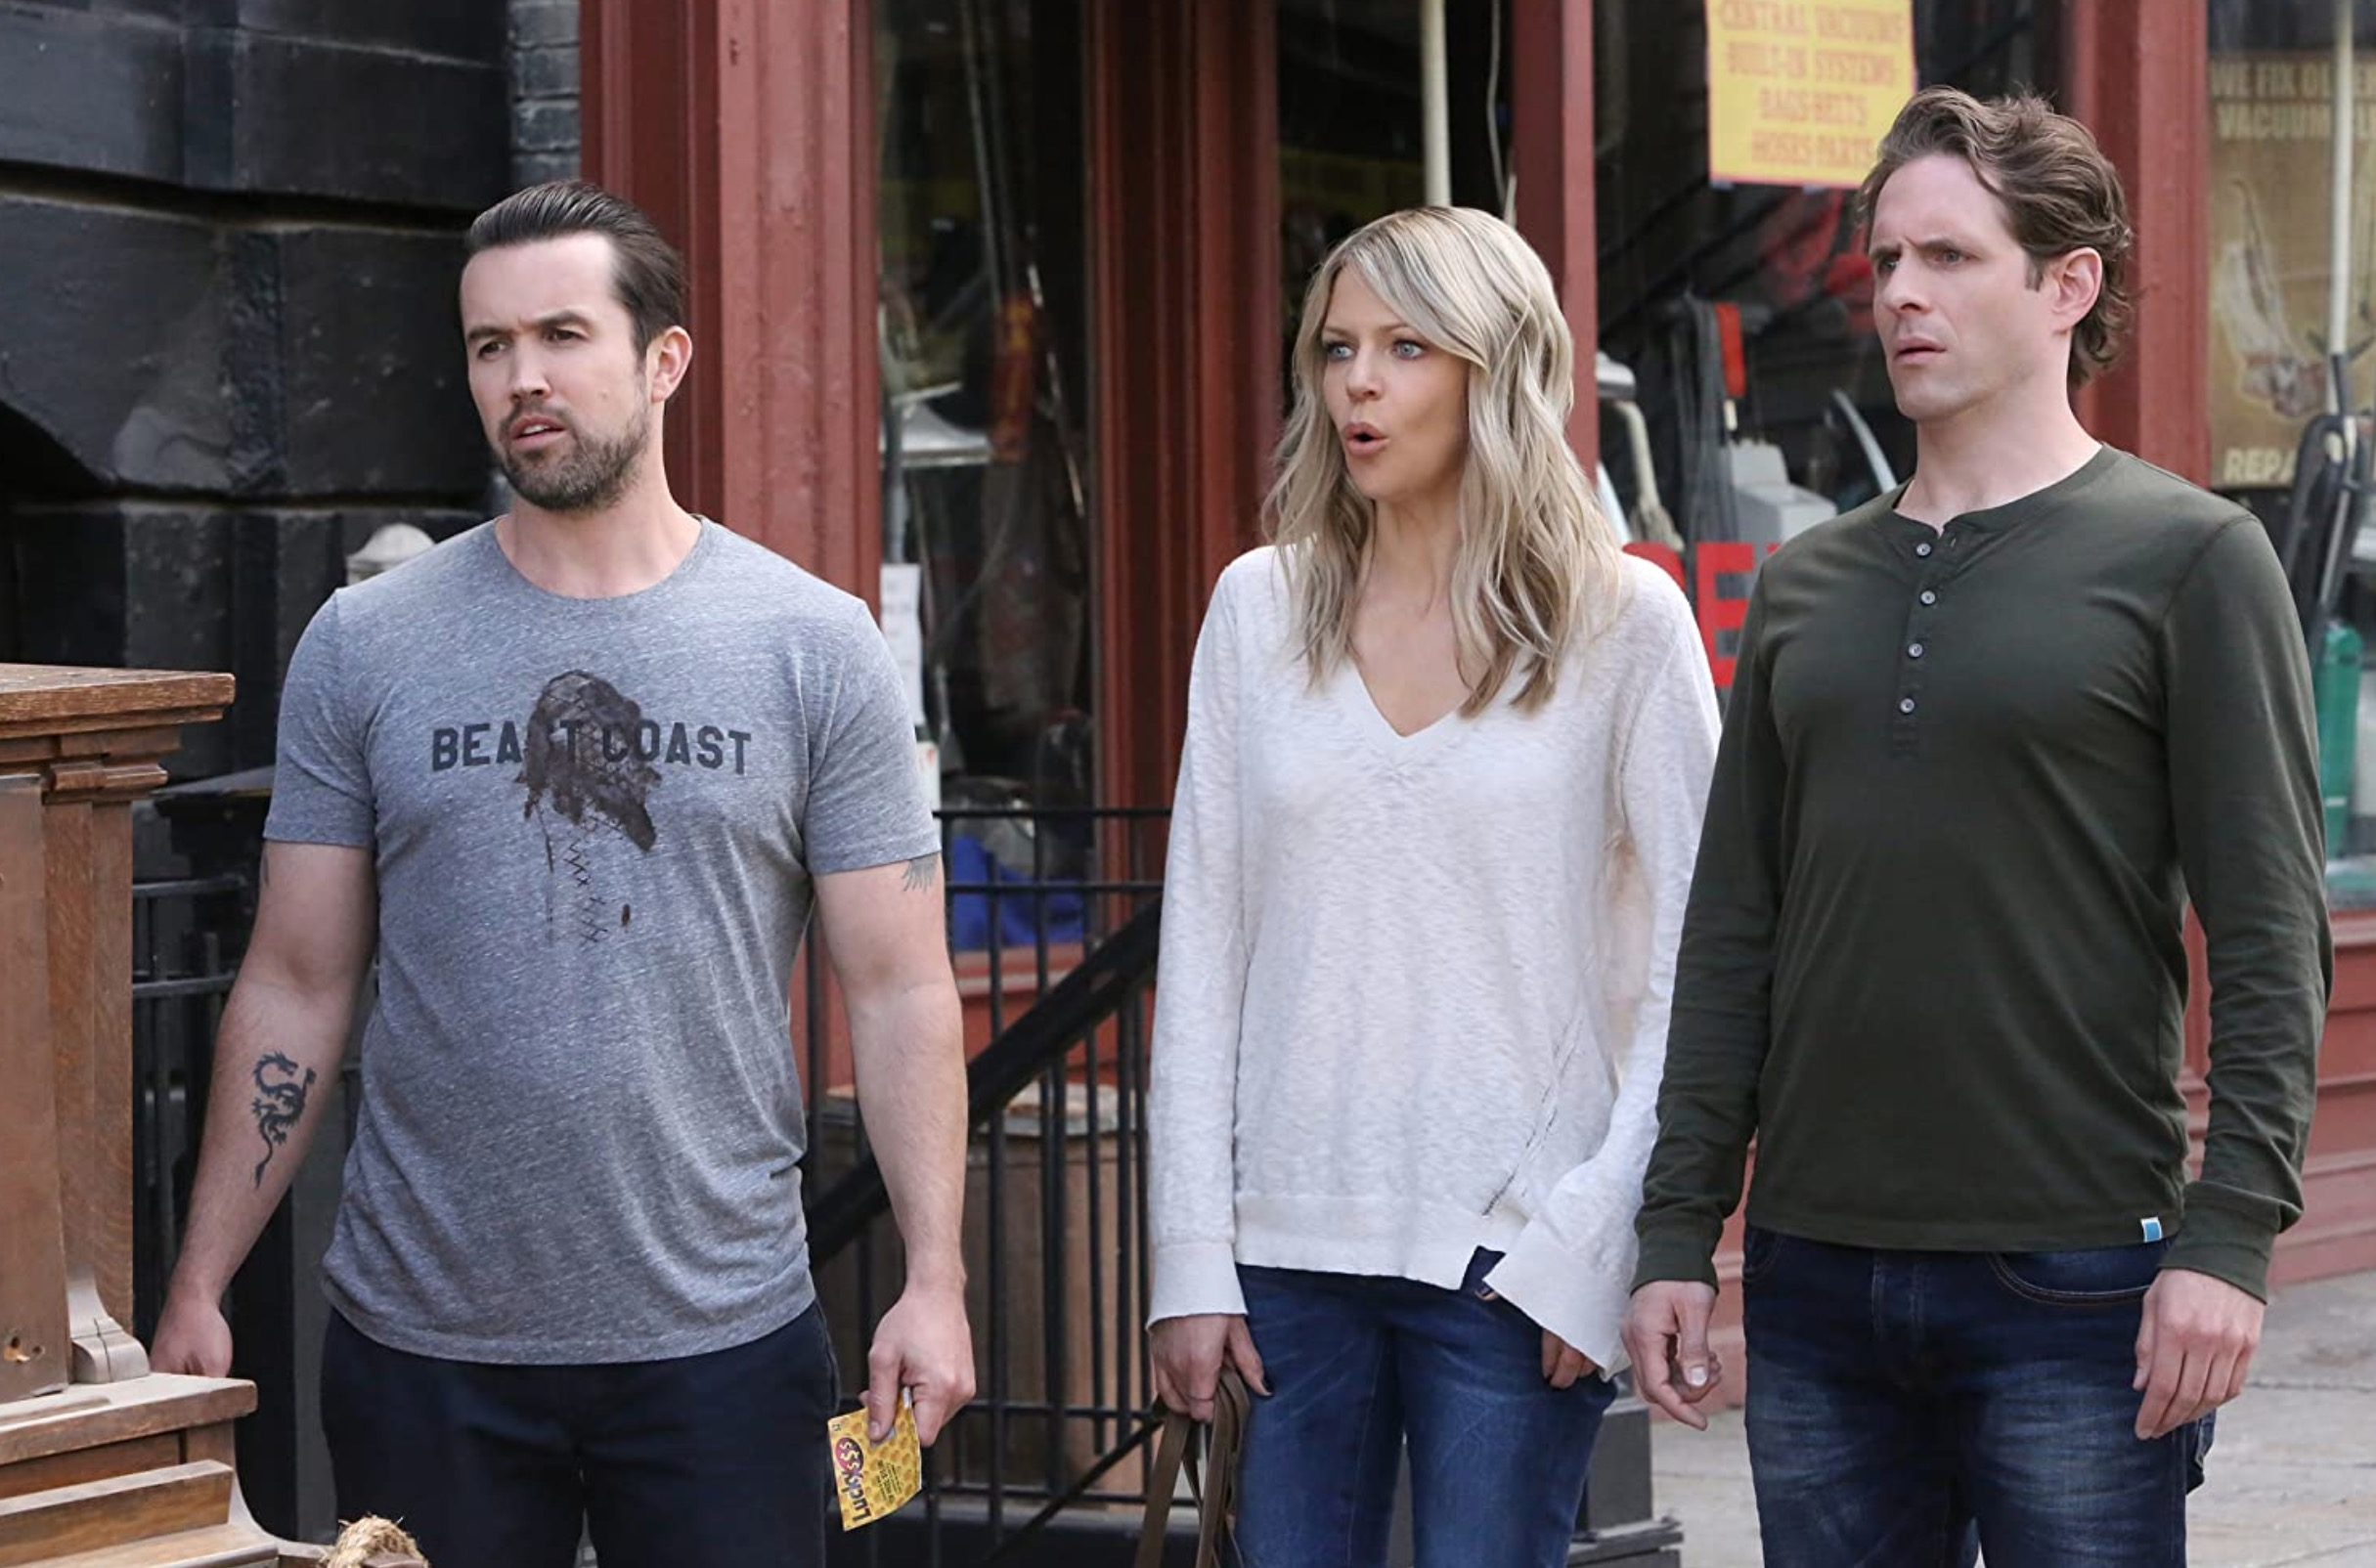 Its Always Sunny In Philadelphia Broke A Long-Standing TV Record